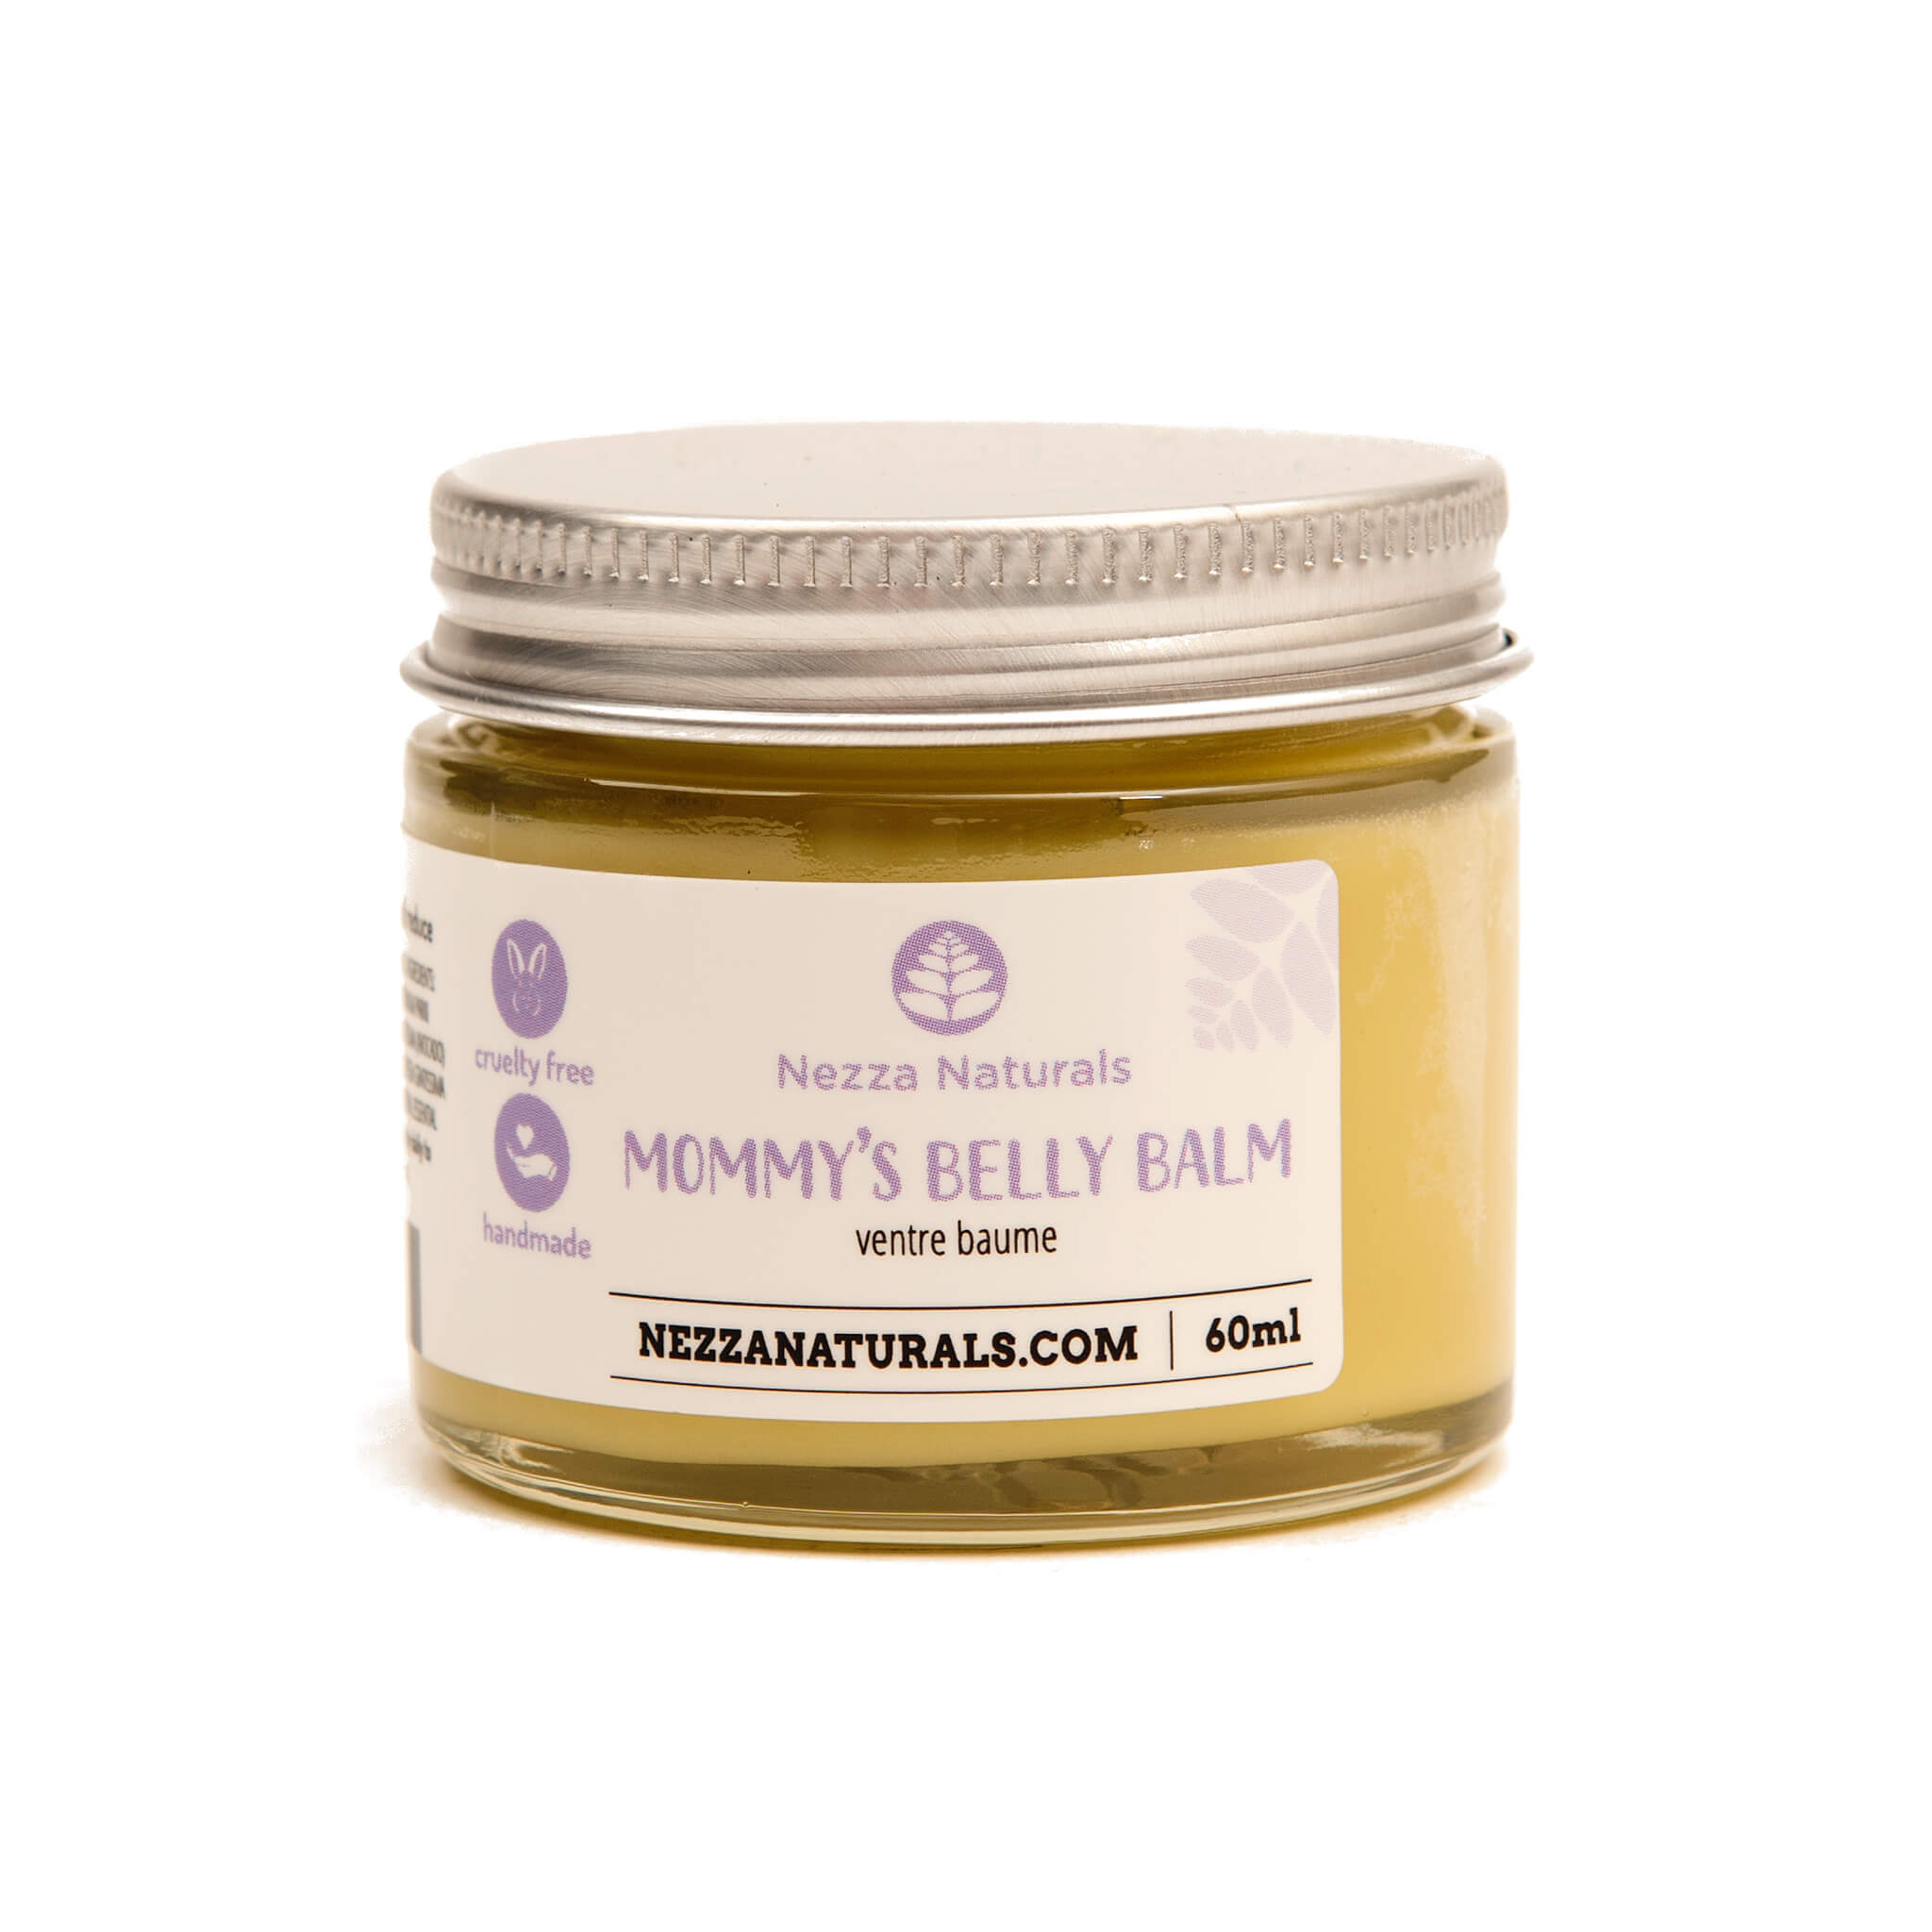 Mommy's Belly Balm